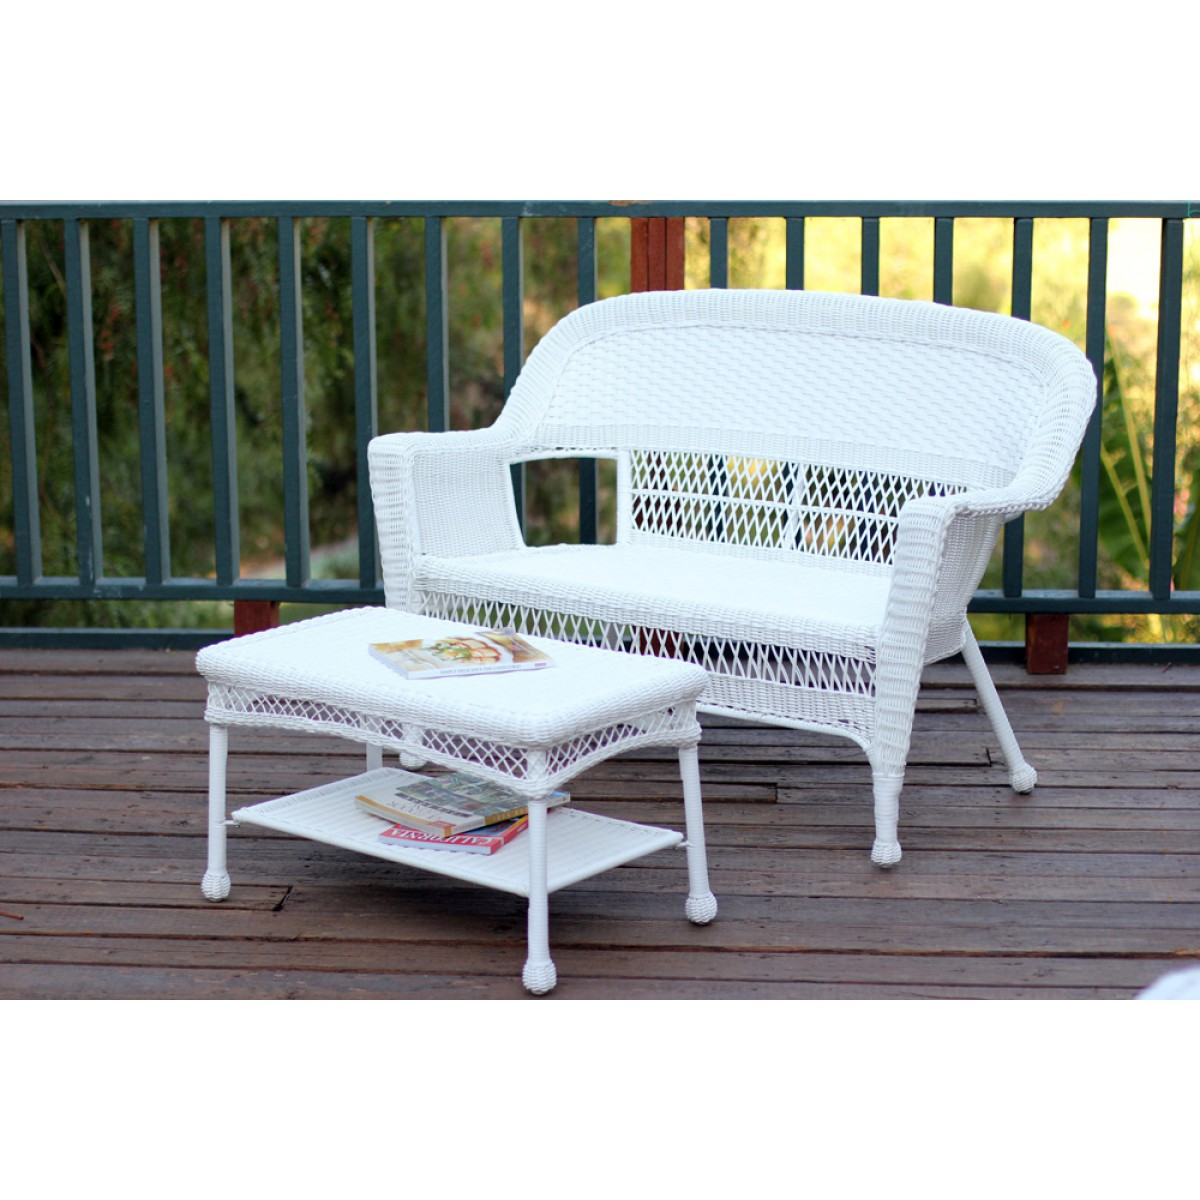 White wicker patio love seat and coffee table set without cushion White wicker coffee table